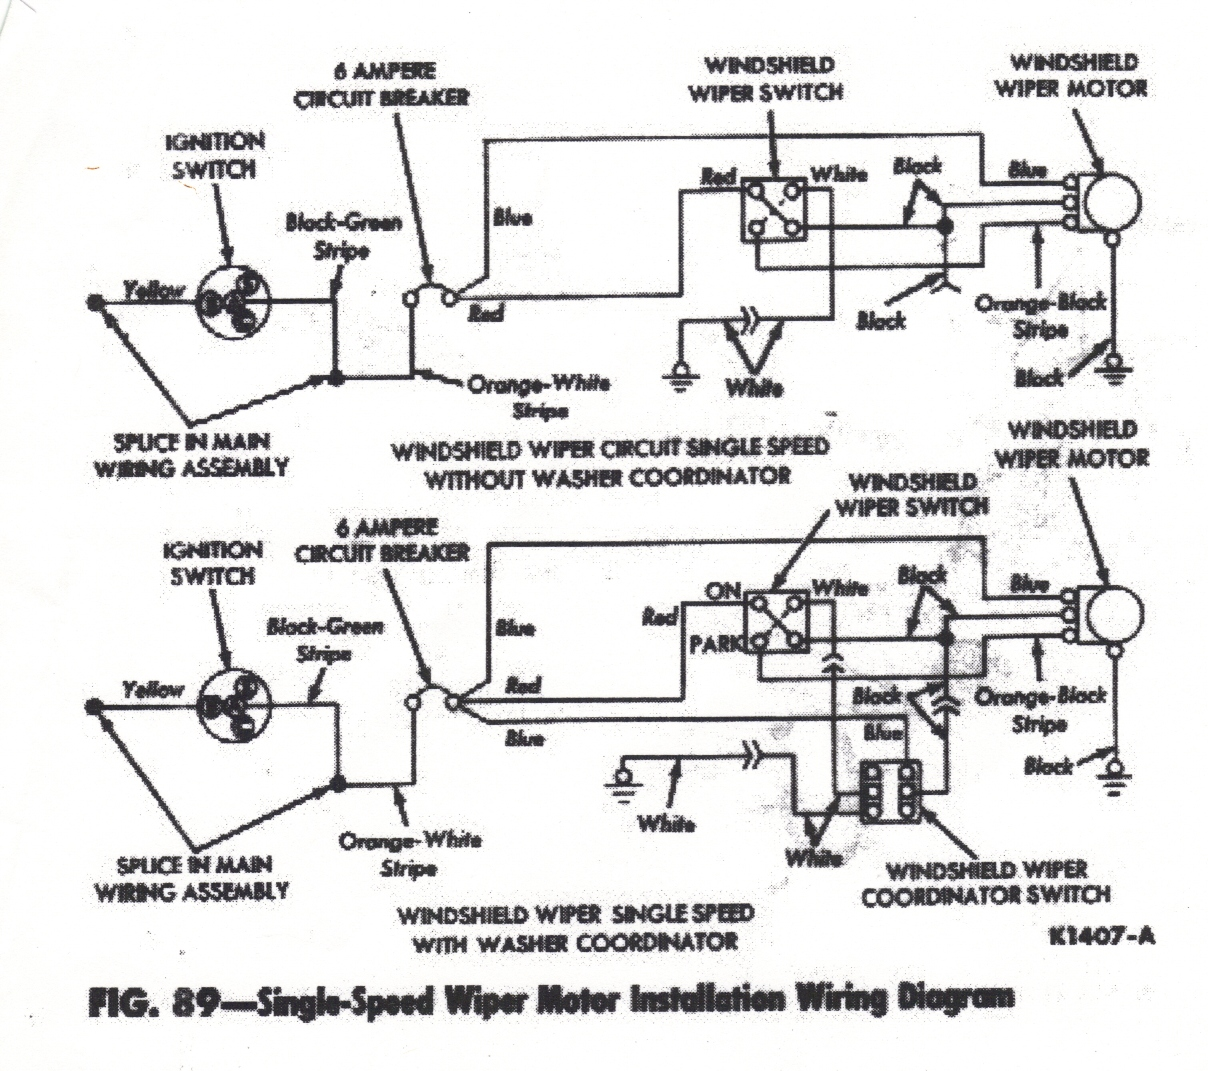 64_Falcon 3 64 falcon wiring diagram 64 comet ignition wiring \u2022 wiring proteam 1500xp wiring diagram at readyjetset.co